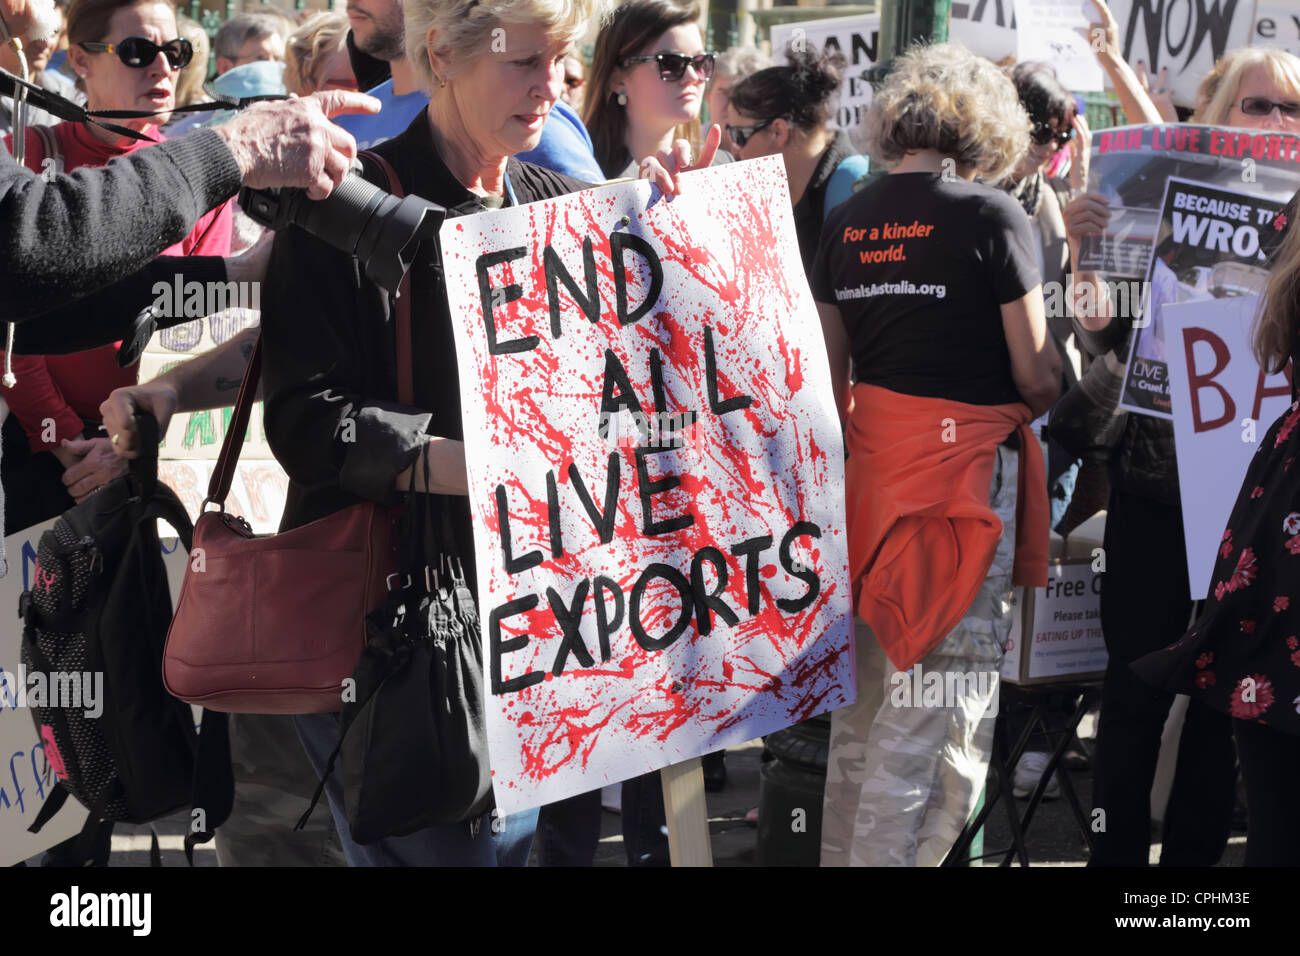 End All Live Exports - Stock Image